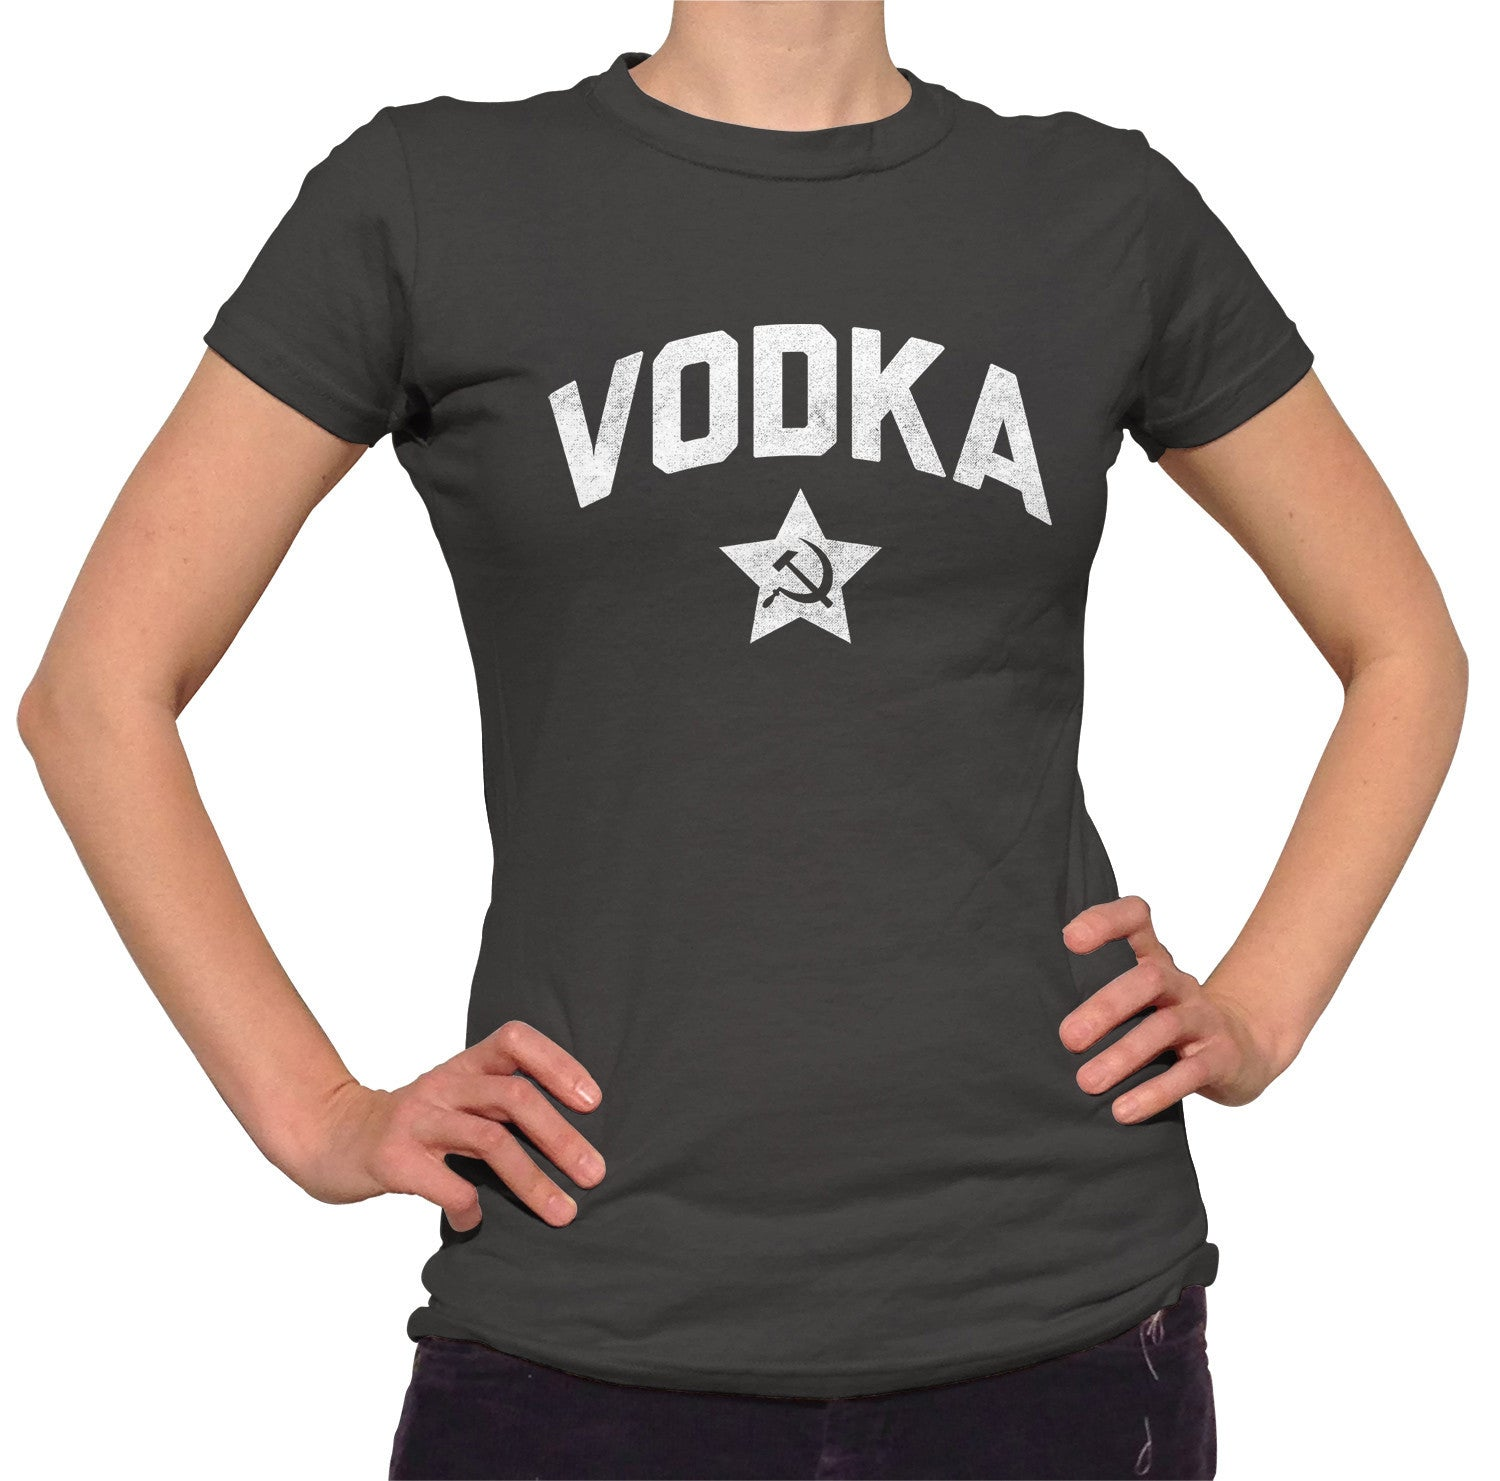 Women's Team Vodka T-Shirt Cool Funny Drinking